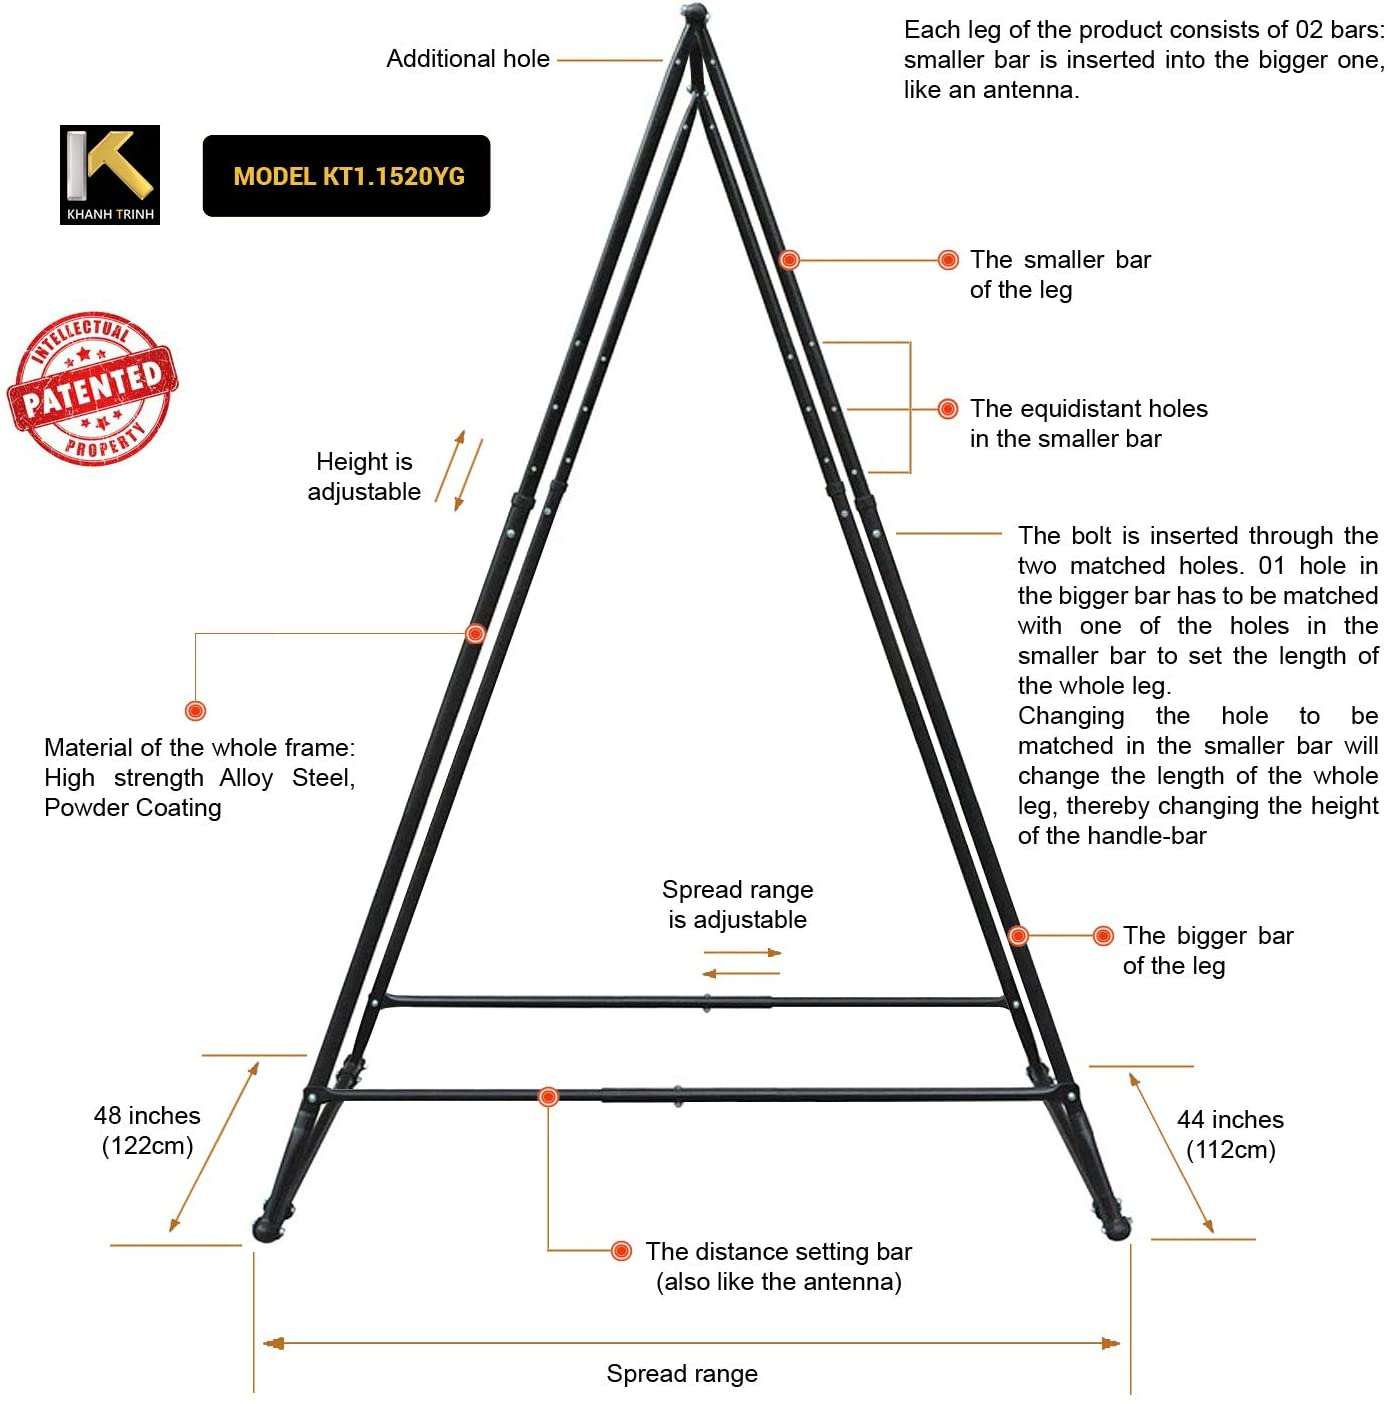 KT Dedicated Stand Frame for Aerial Yoga Model KT1.1520YG